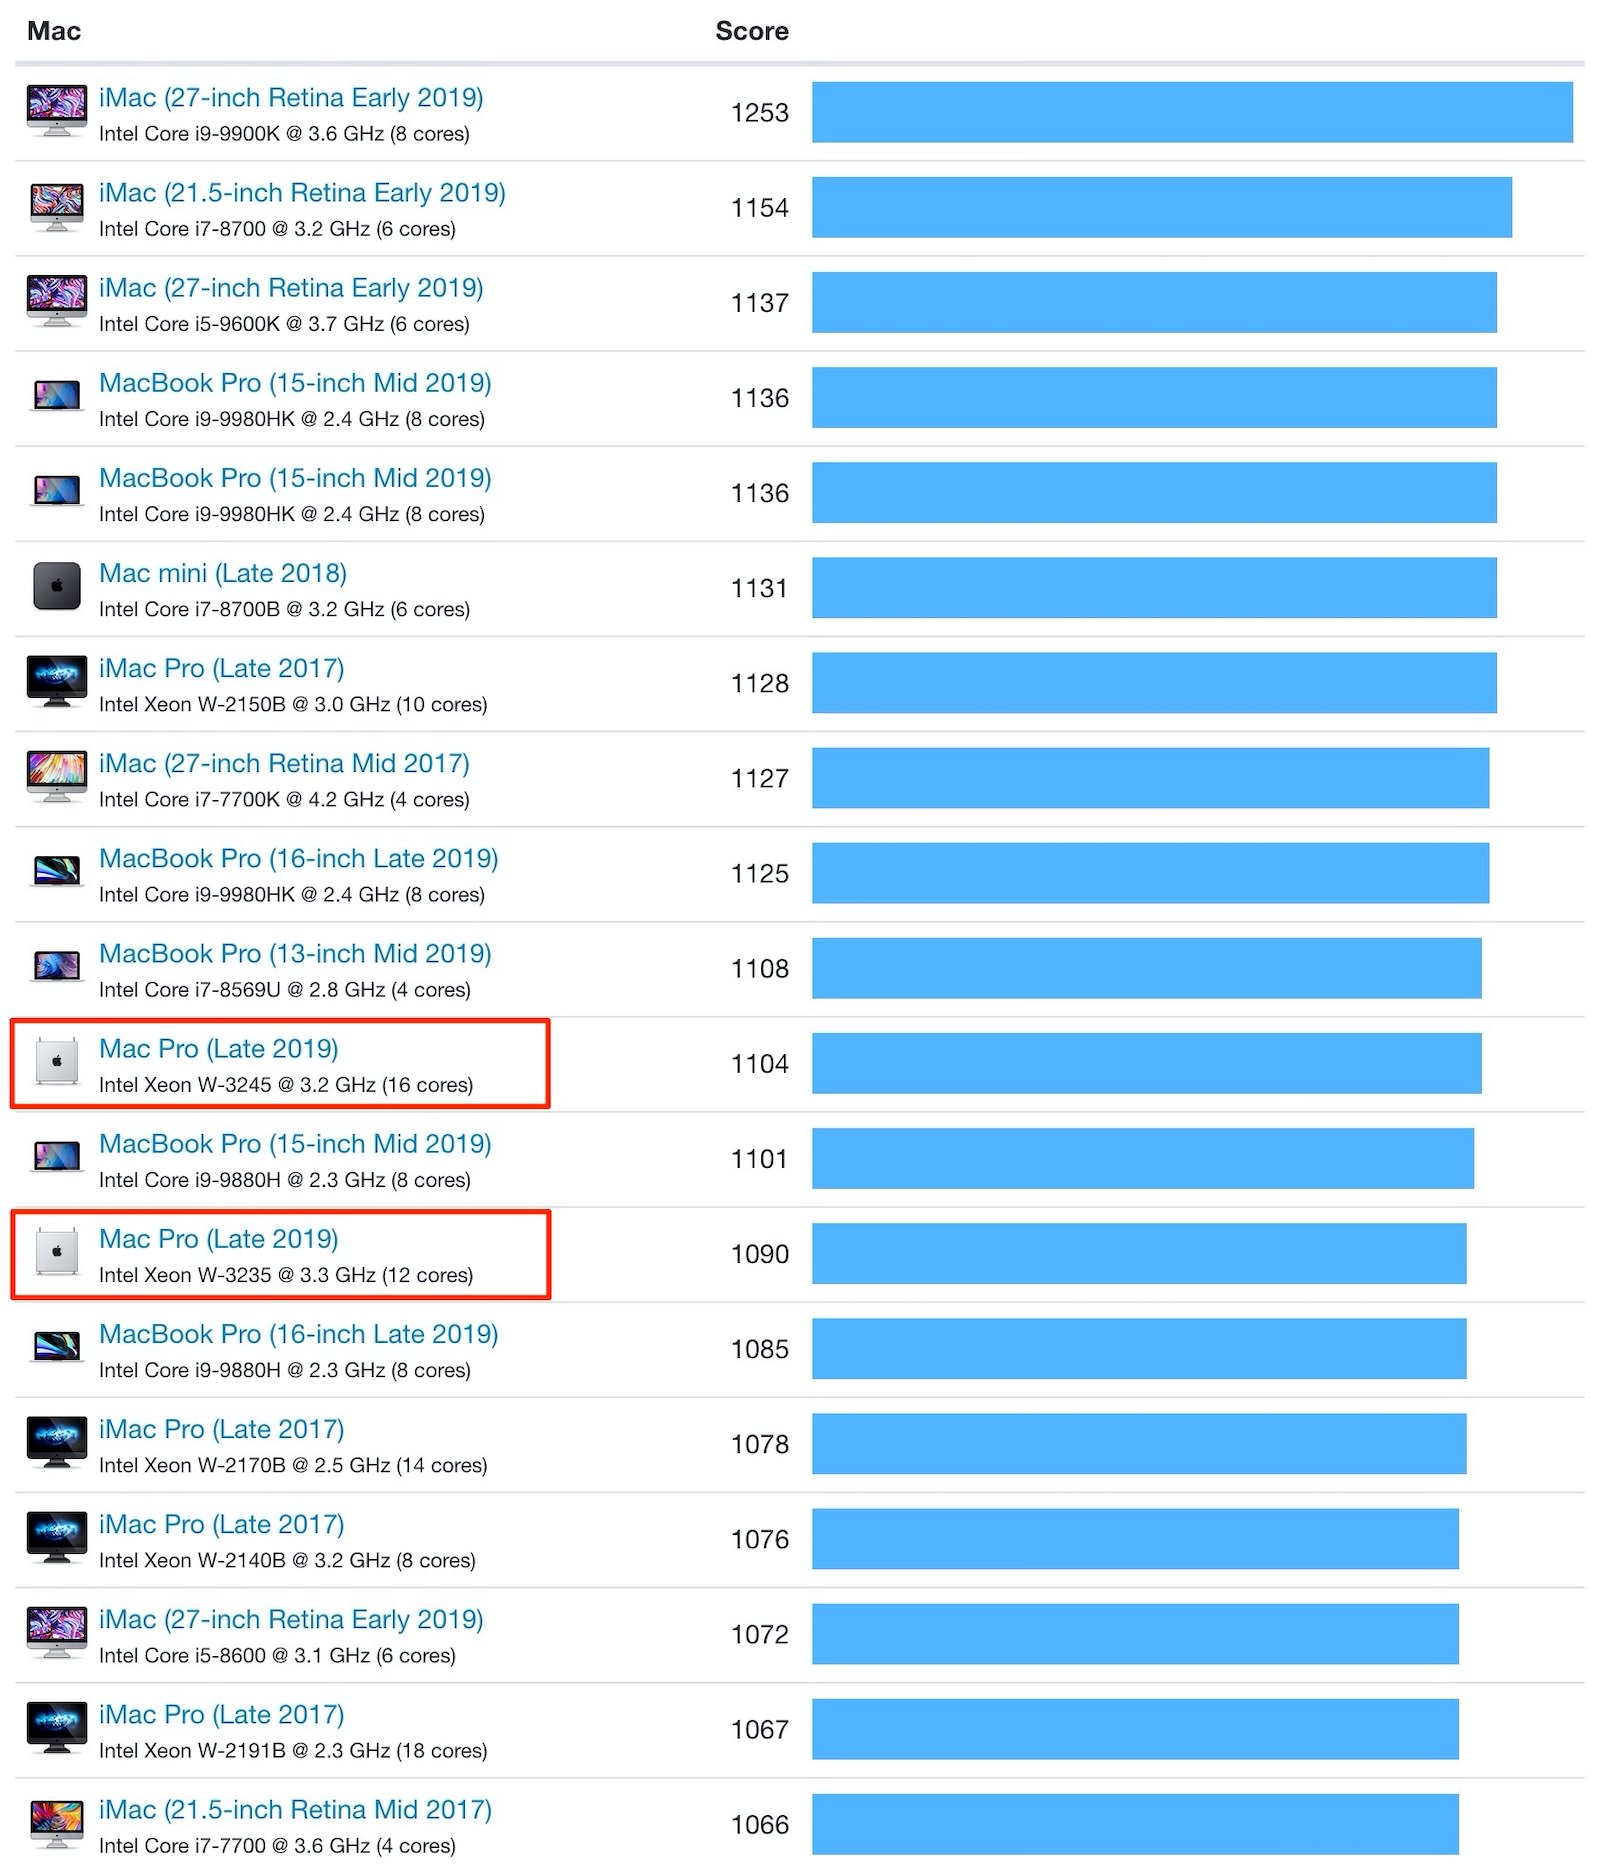 Mac Pro Geekbench Results 2